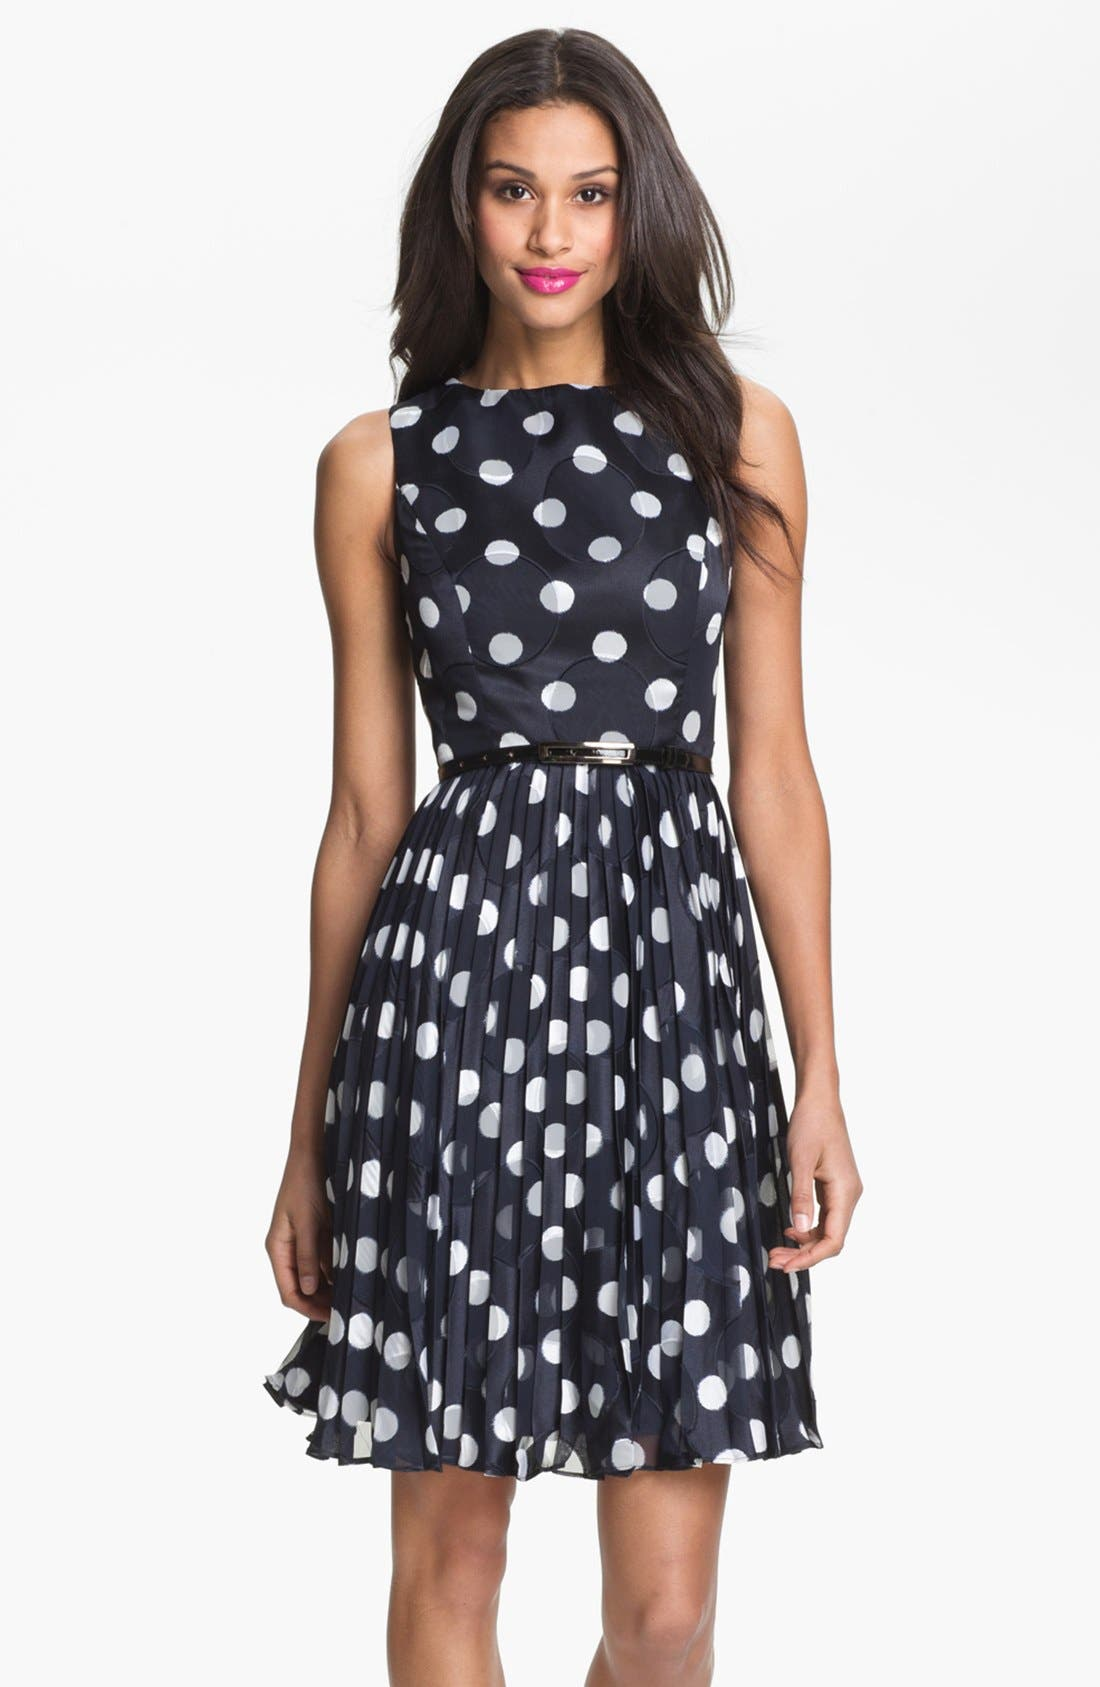 Alternate Image 1 Selected - Adrianna Papell Burnout Polka Dot Fit & Flare Dress (Regular & Petite)